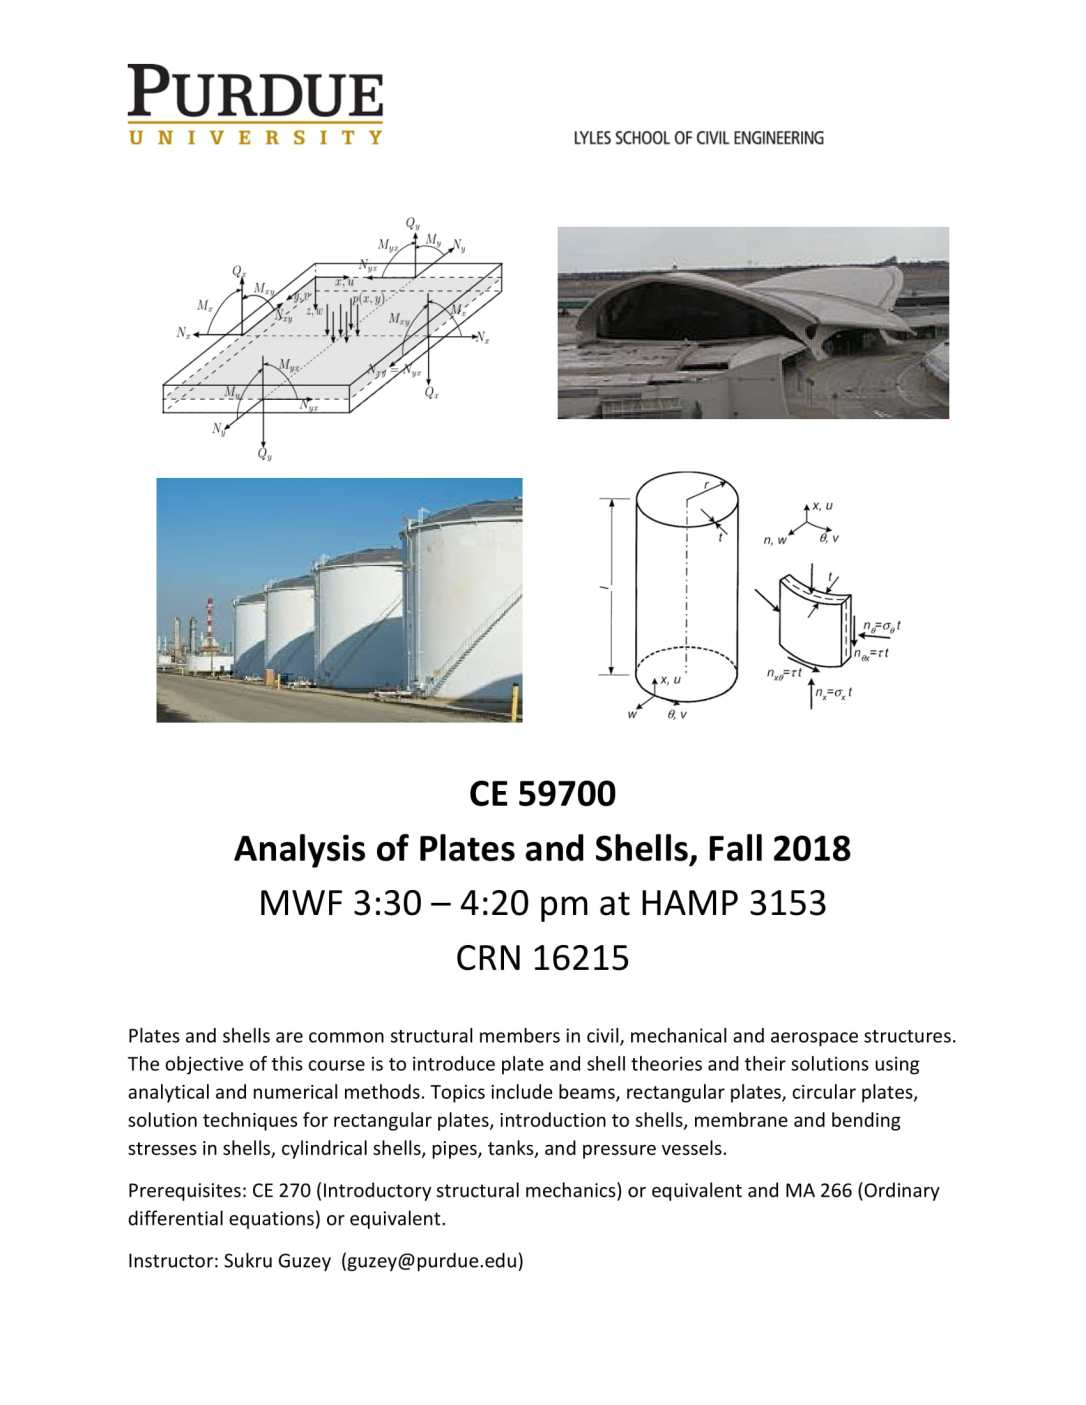 CE 597 Analysis of Plates and Shells - Flyer-1